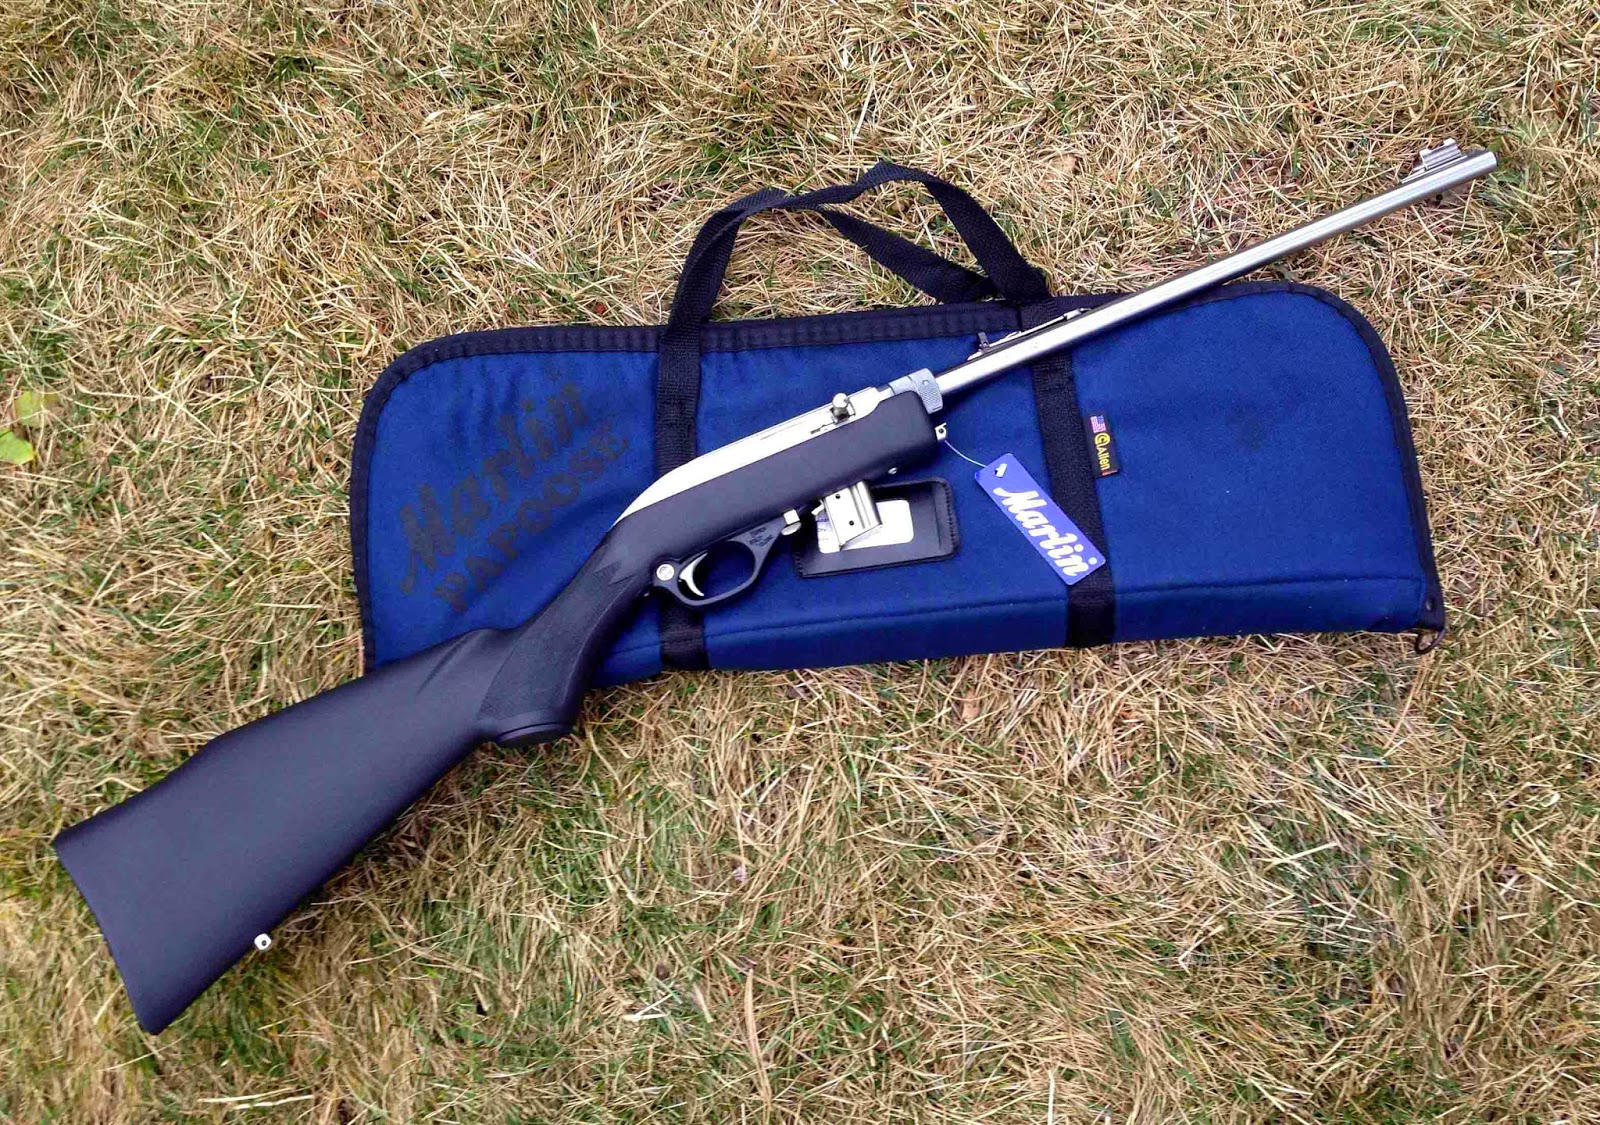 Marlin Model 70PSS Stainless